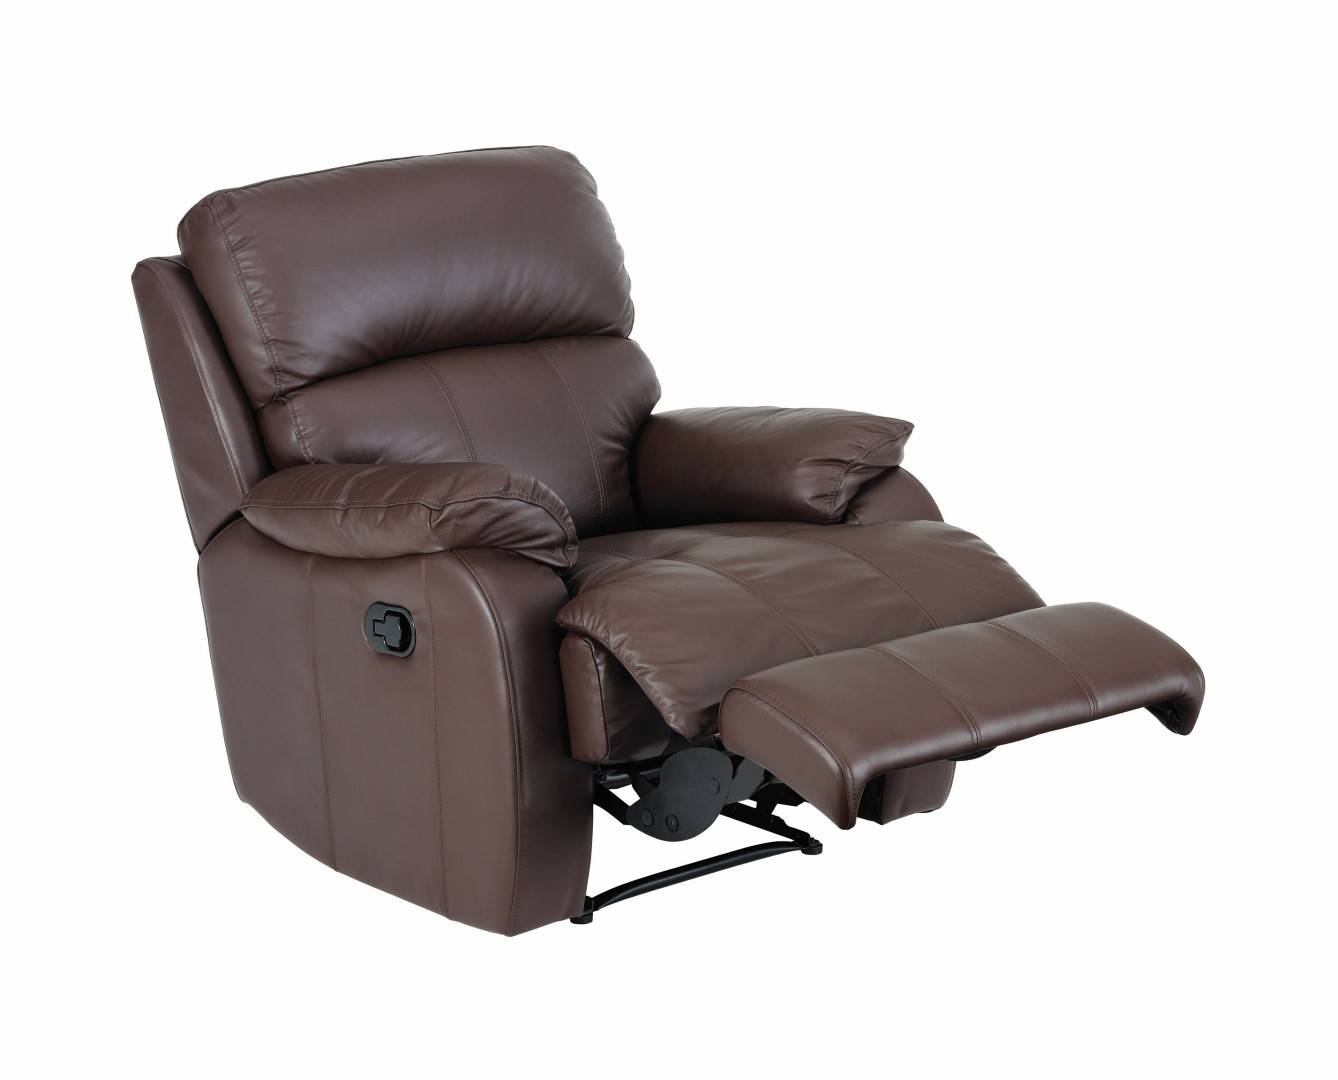 Paris Manual Recliner Chair Cat 35 Leather Hills